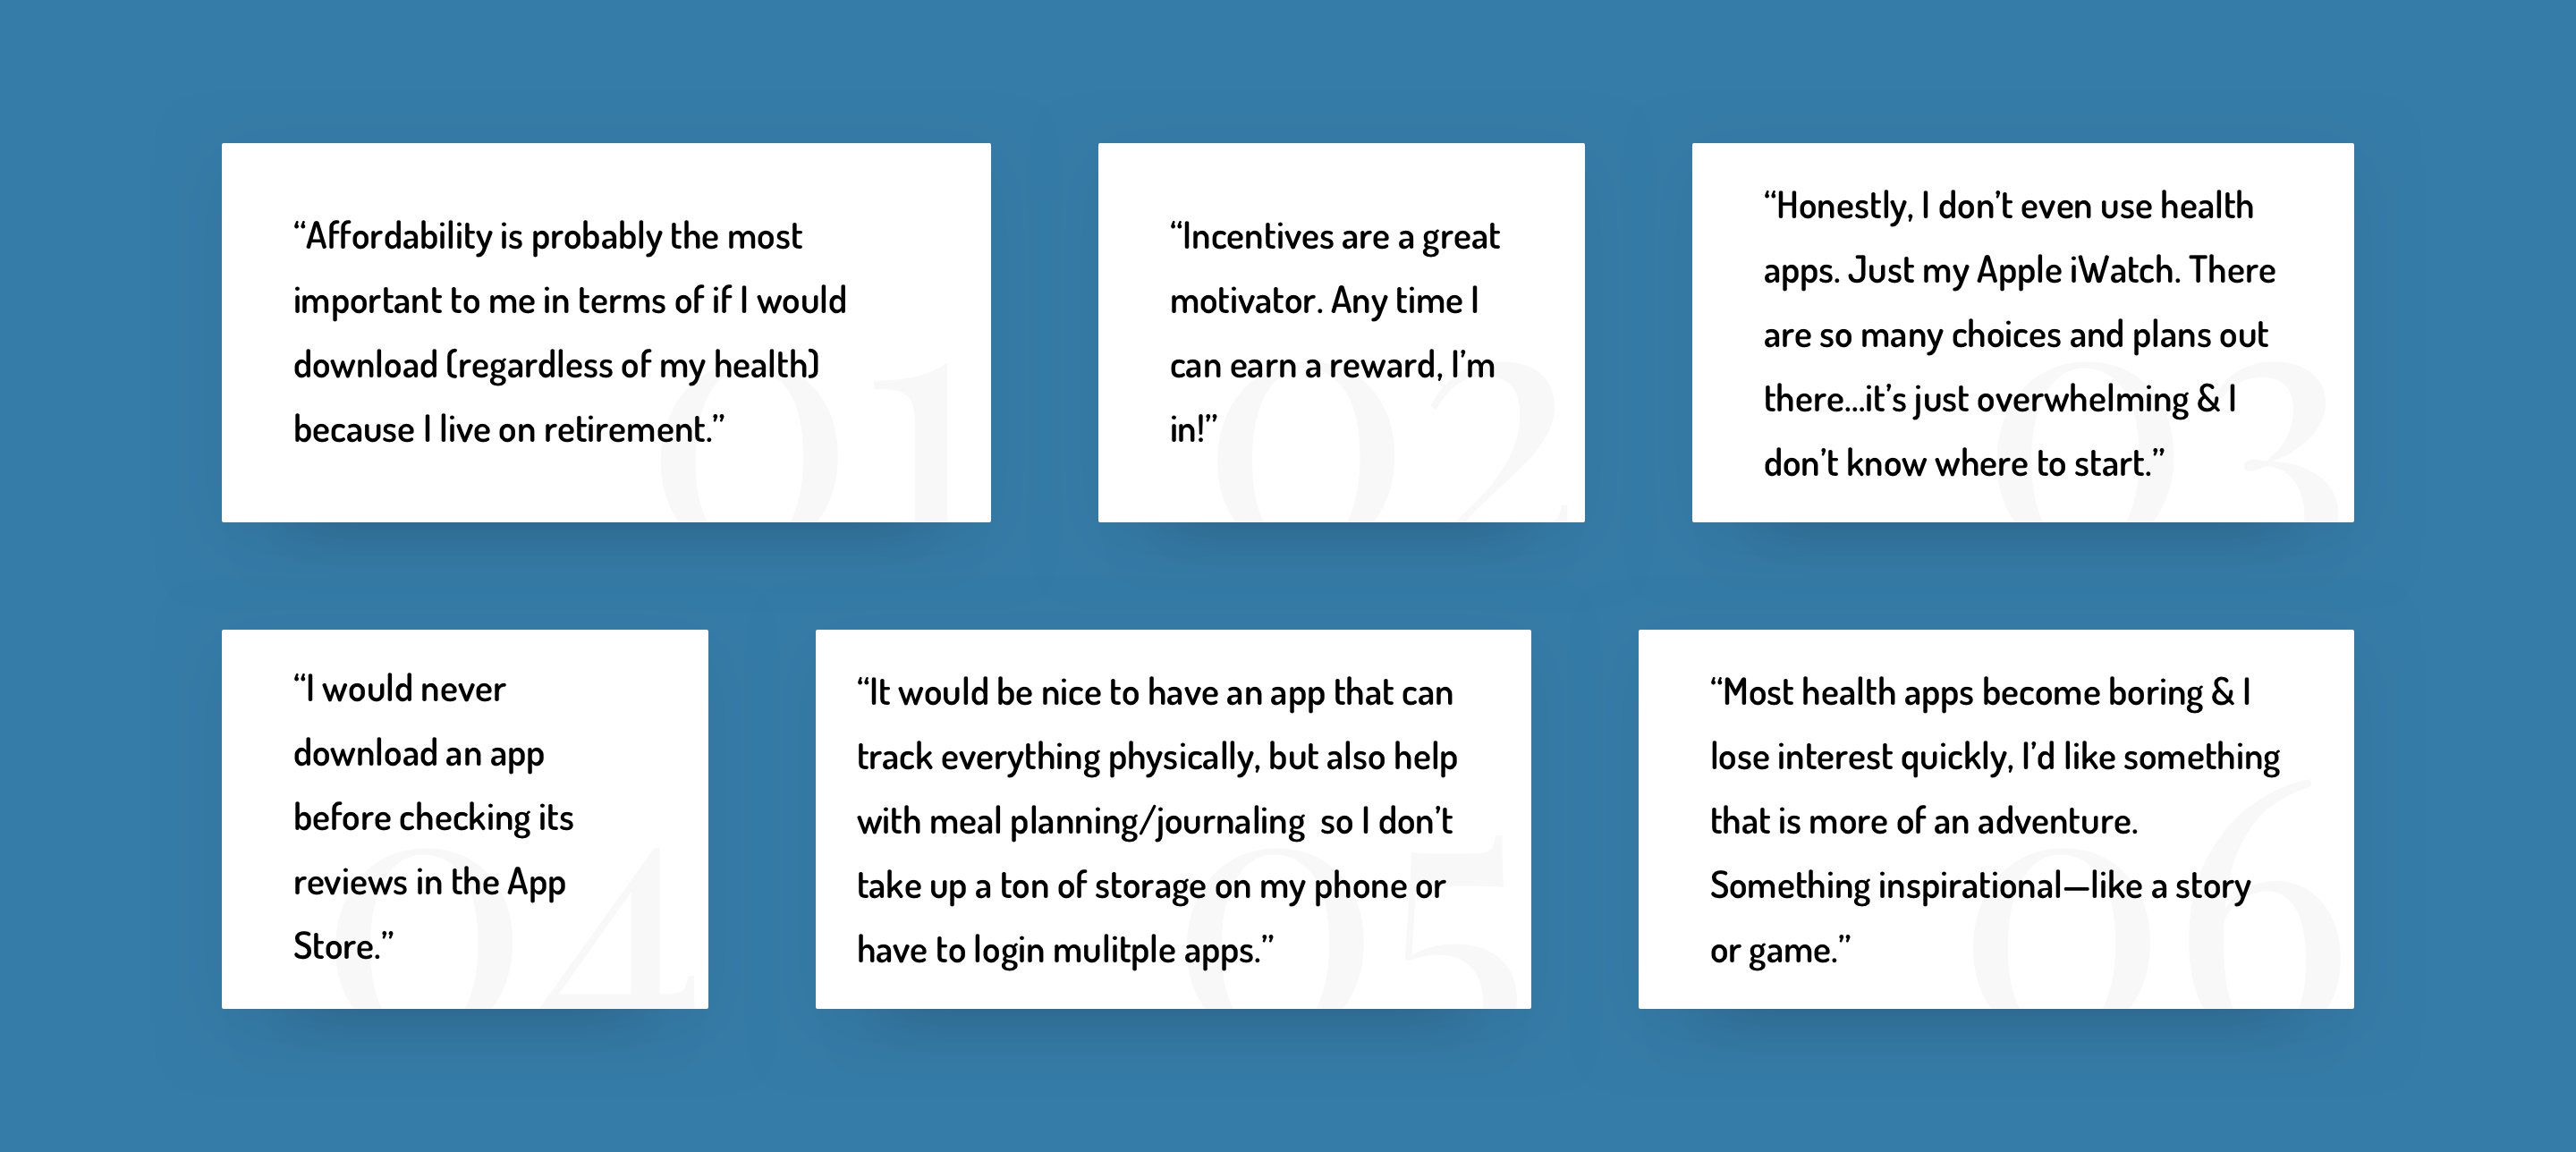 Interesting user quotes from interviews.